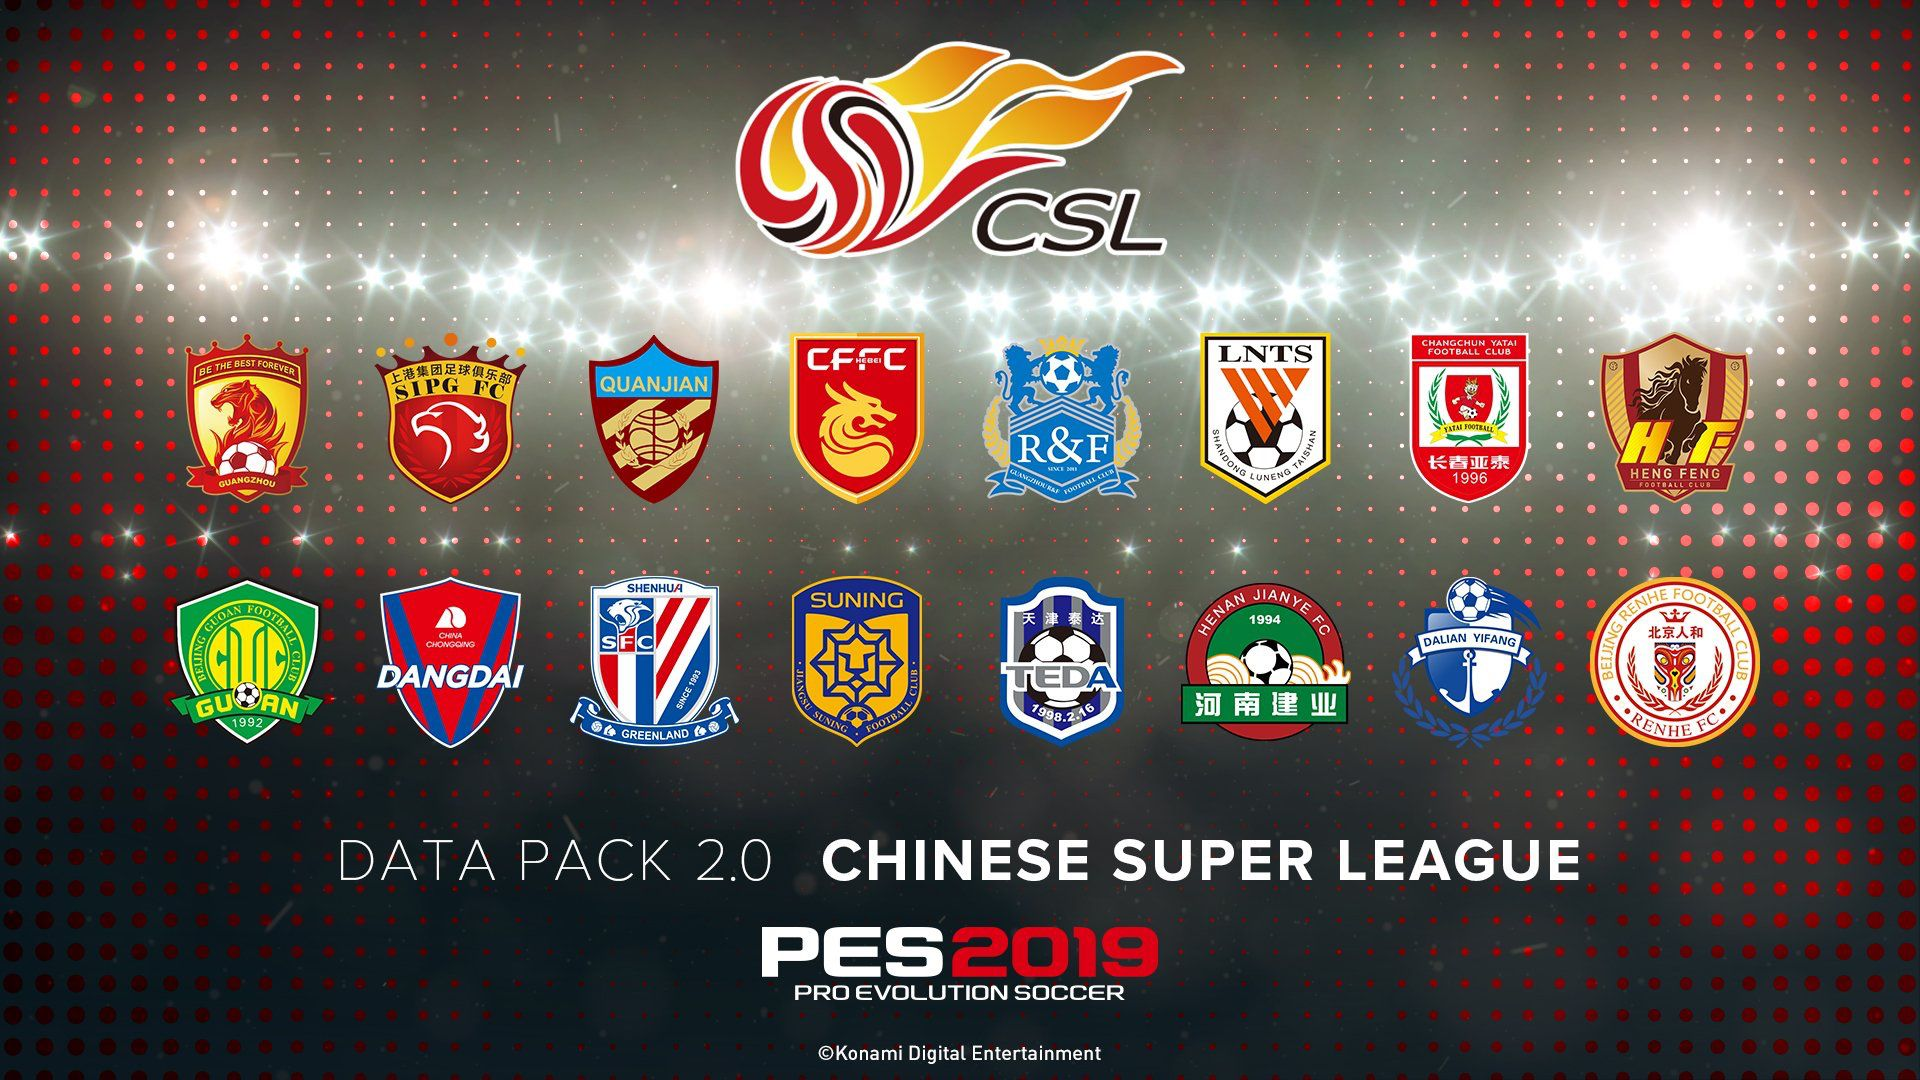 PES 2019: in arrivo il Data Pack 2